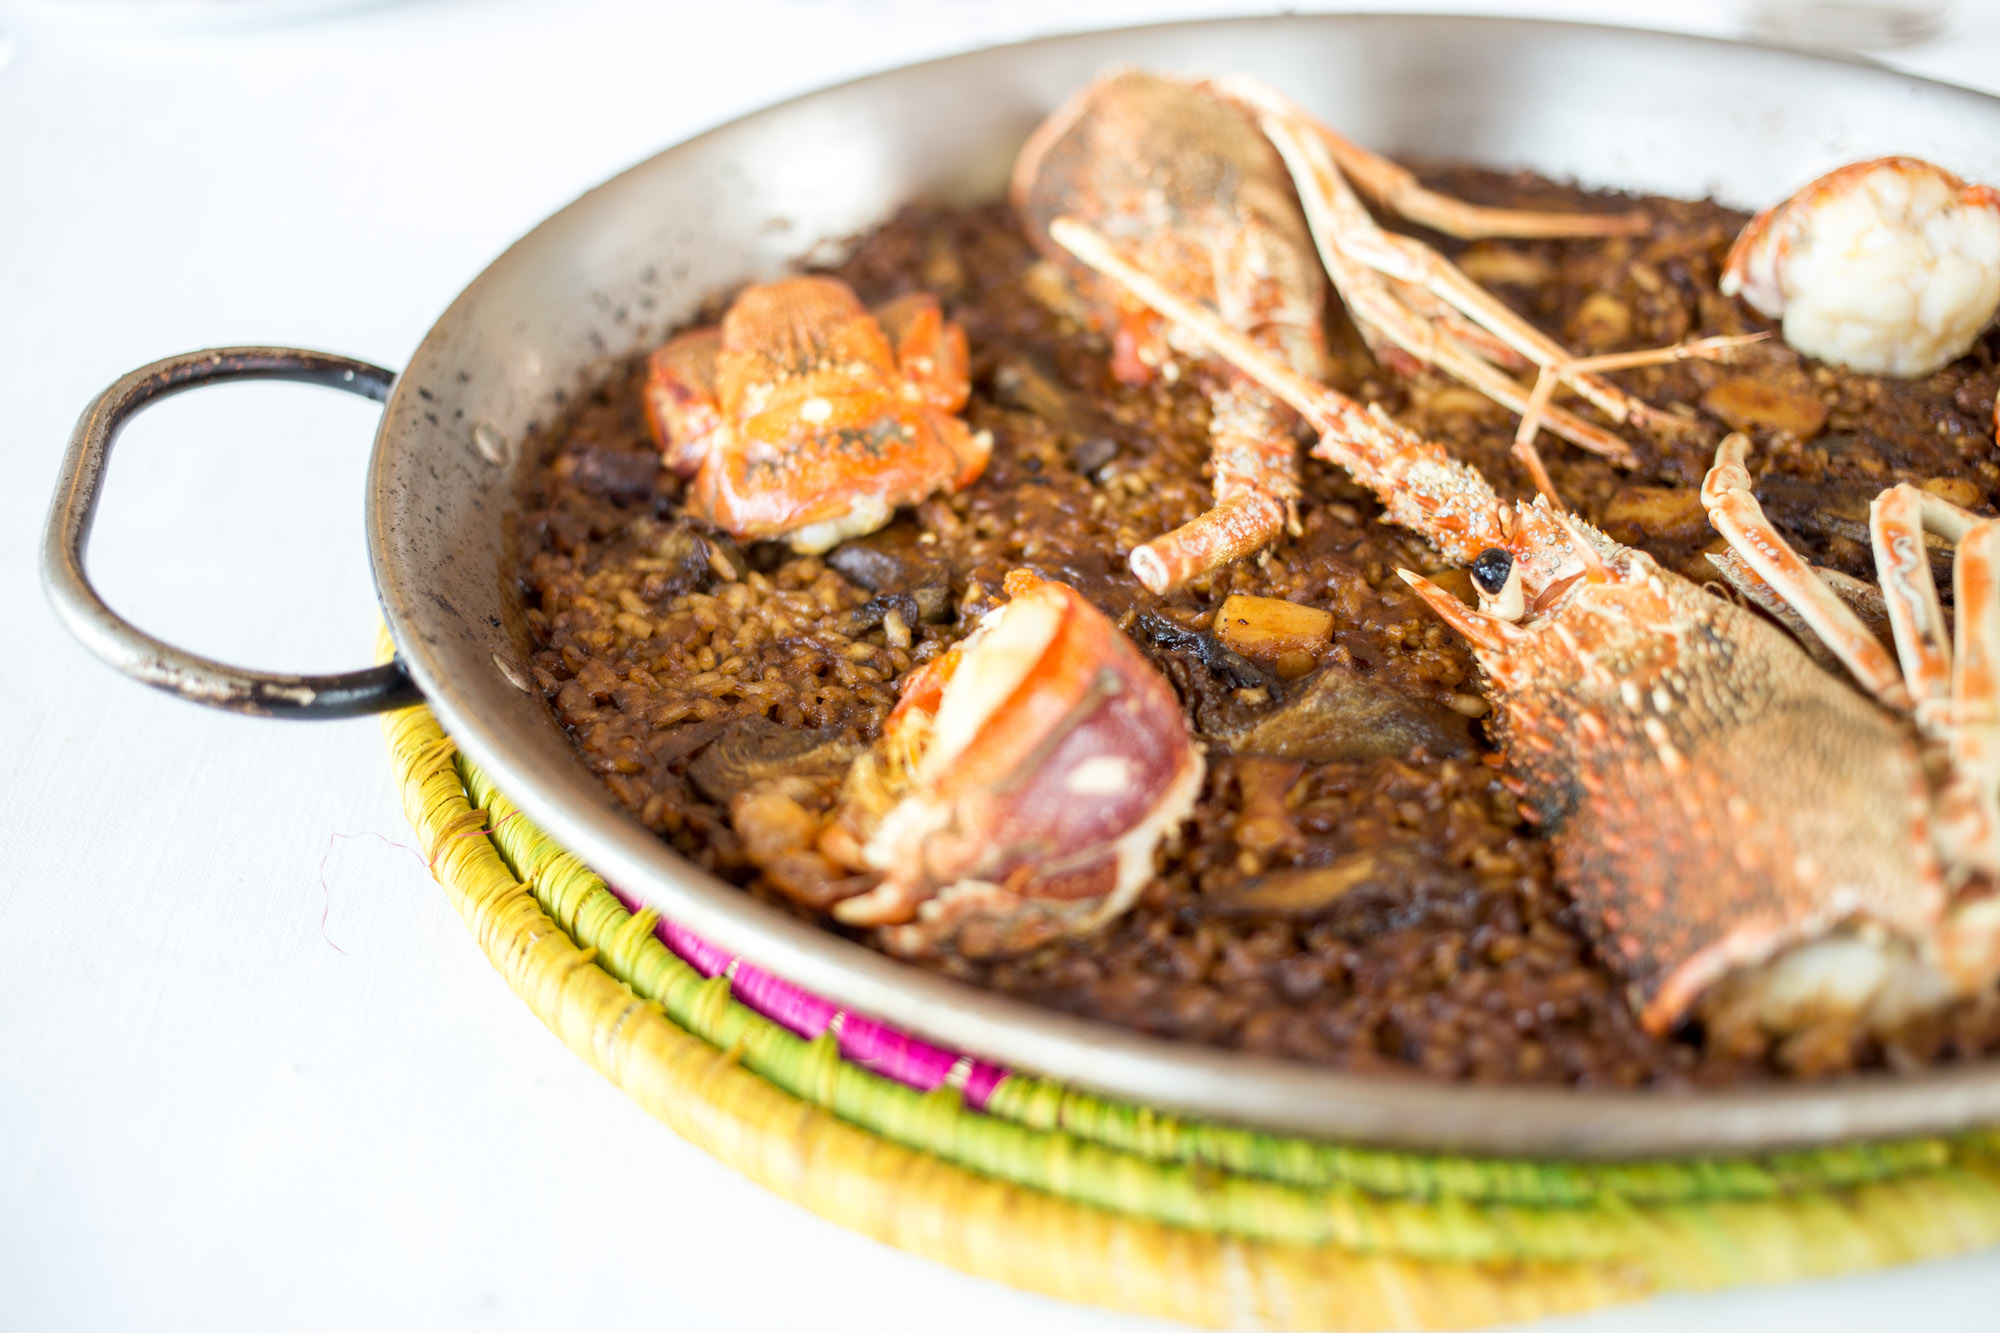 Lobster and Seafood Arroz Els Pescadors